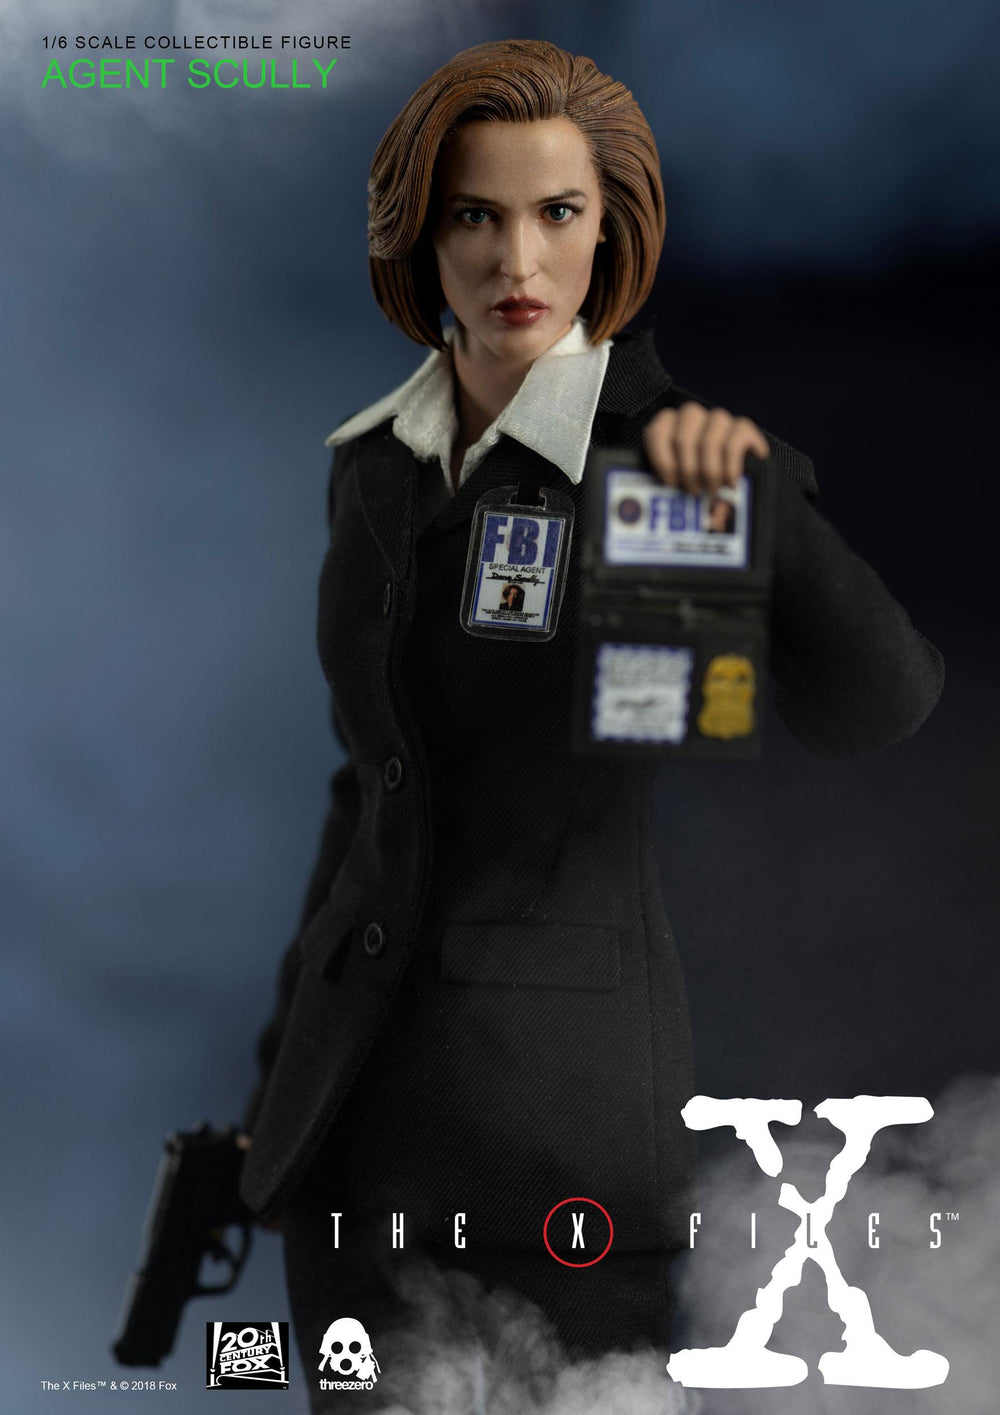 Threezero The X-Files Agent Scully 1/6 Action Figure